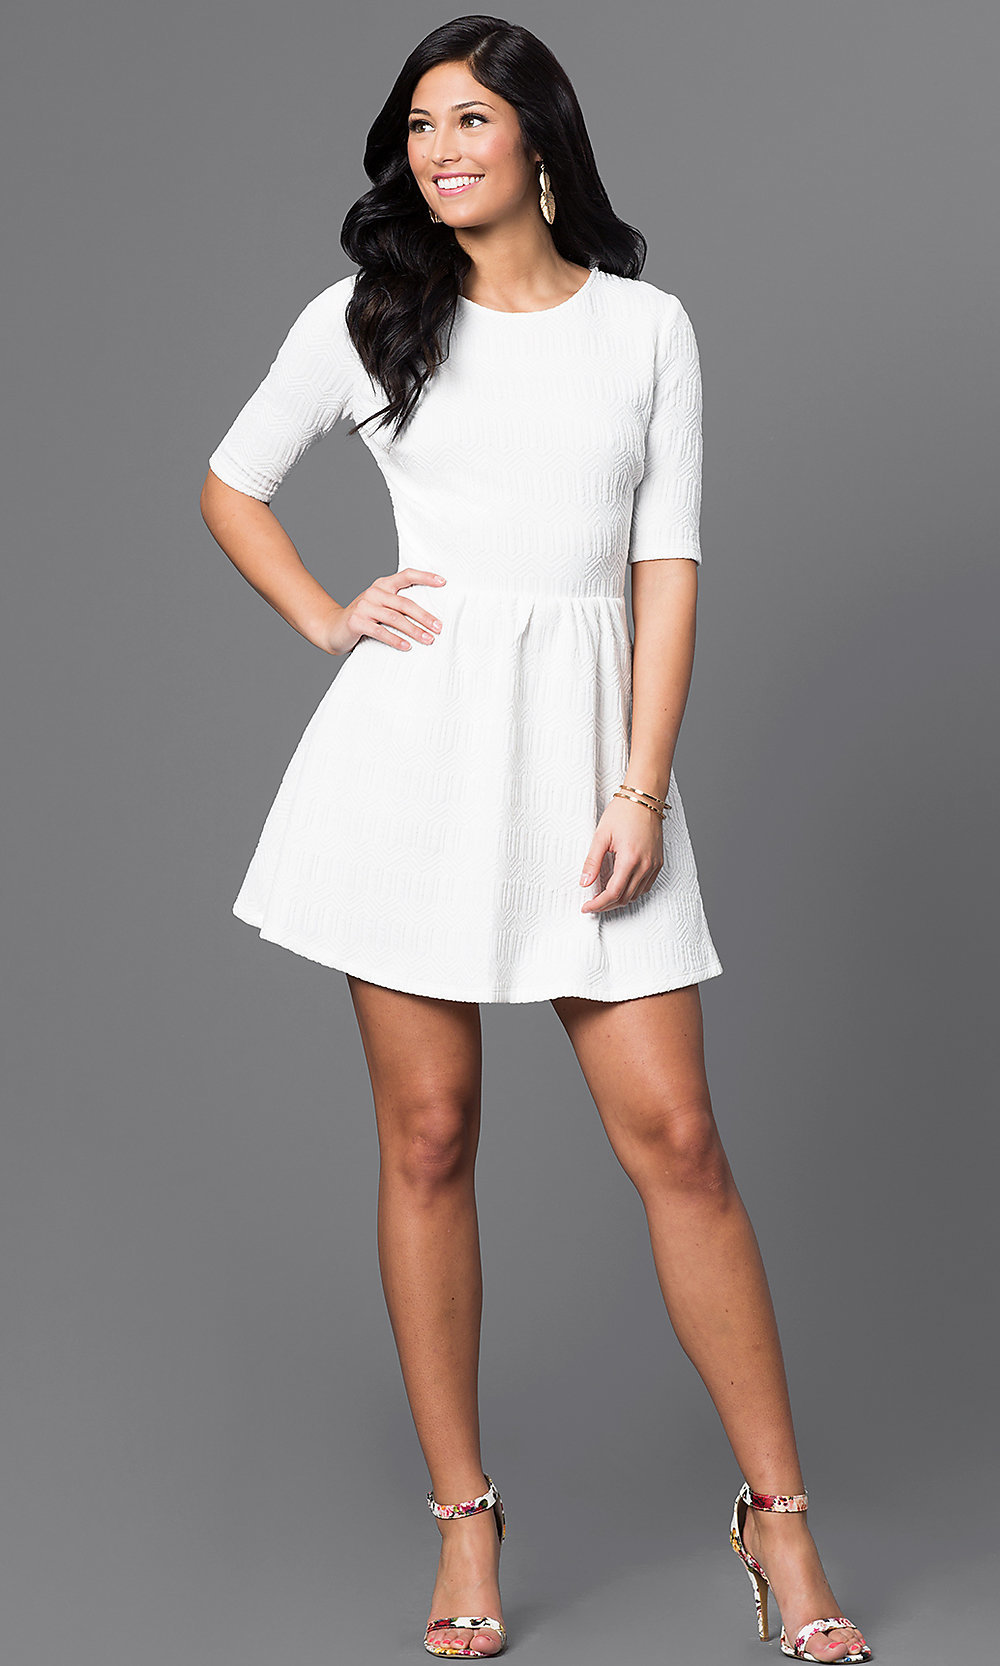 Bee Darlin White Dress with Sleeves - PromGirl